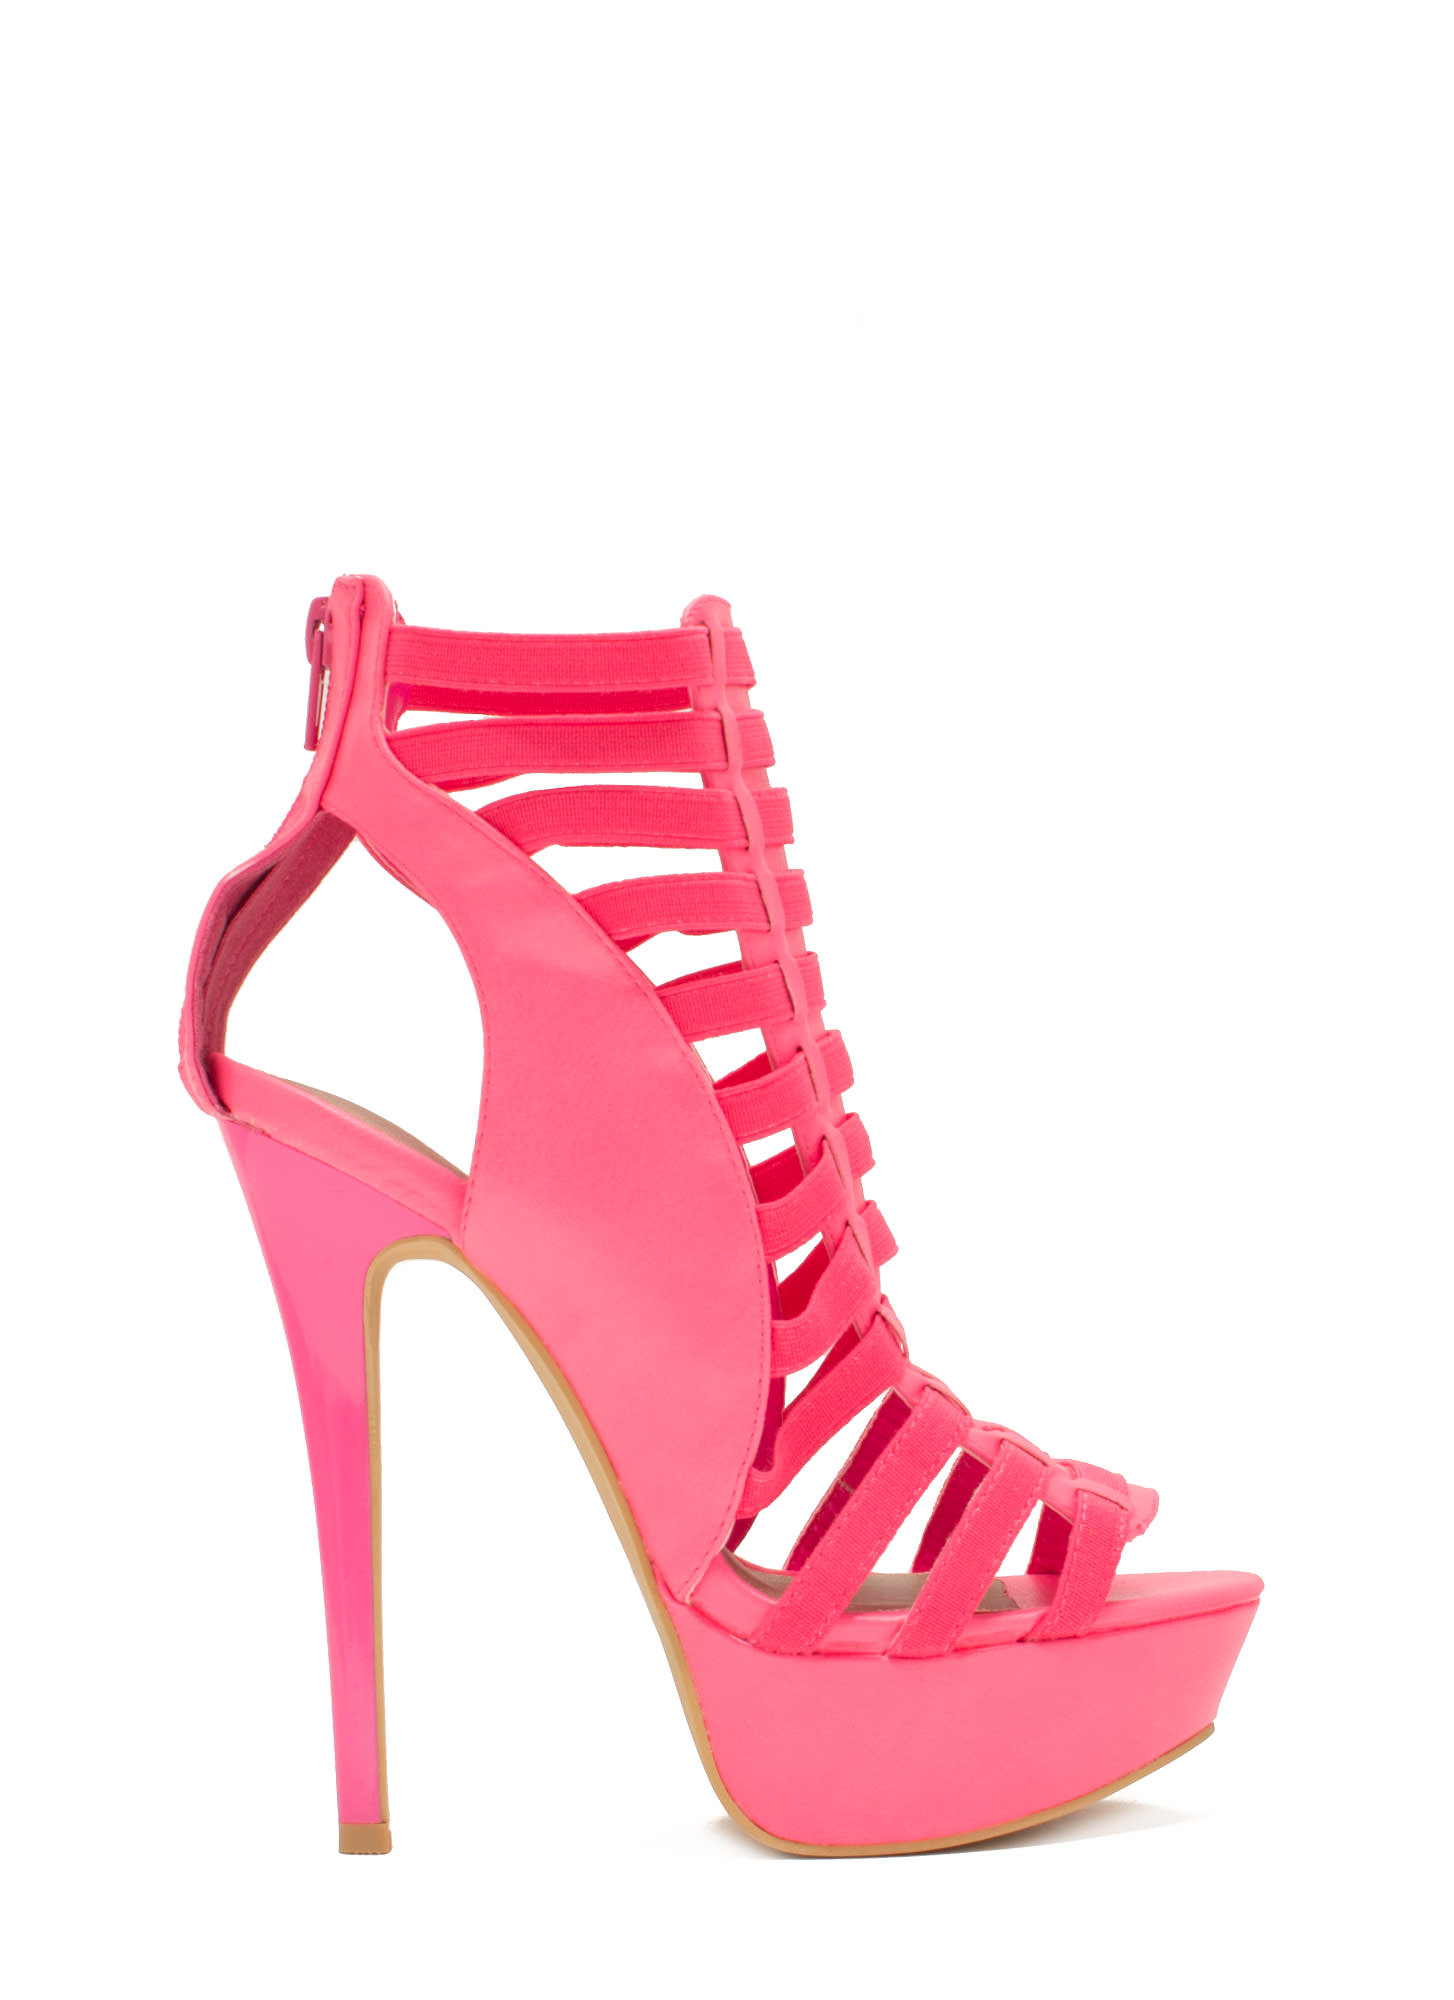 Ladder Up 2 The Top Caged Heels PINK